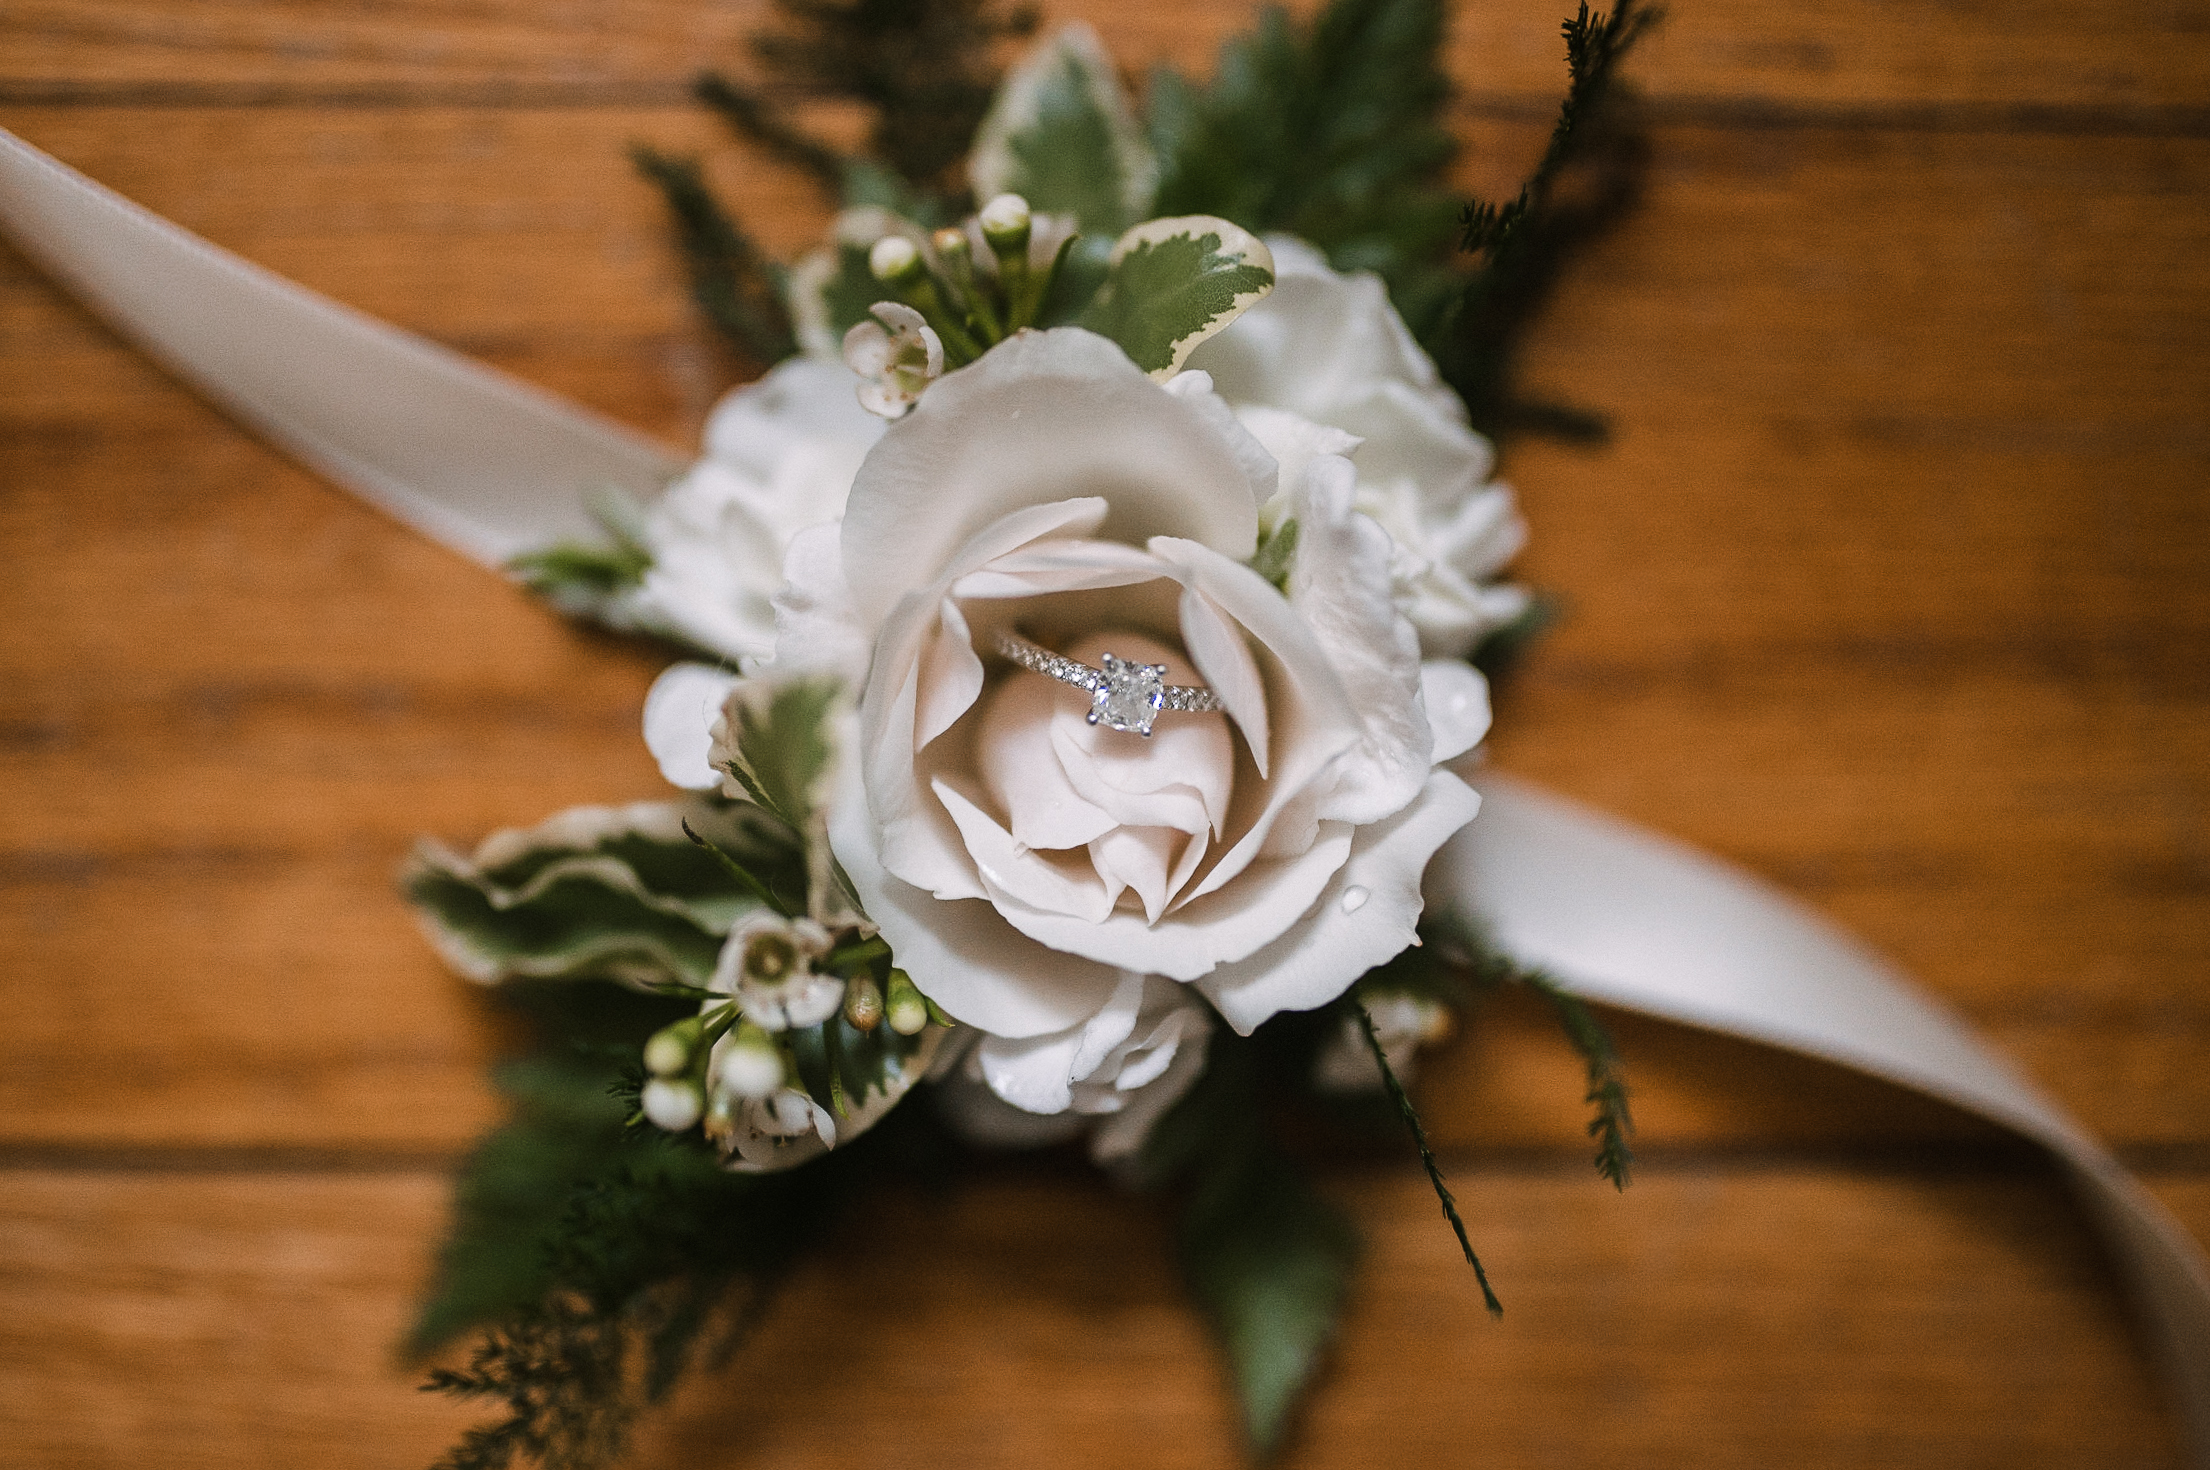 detail shot of wedding ring at tranquility farm